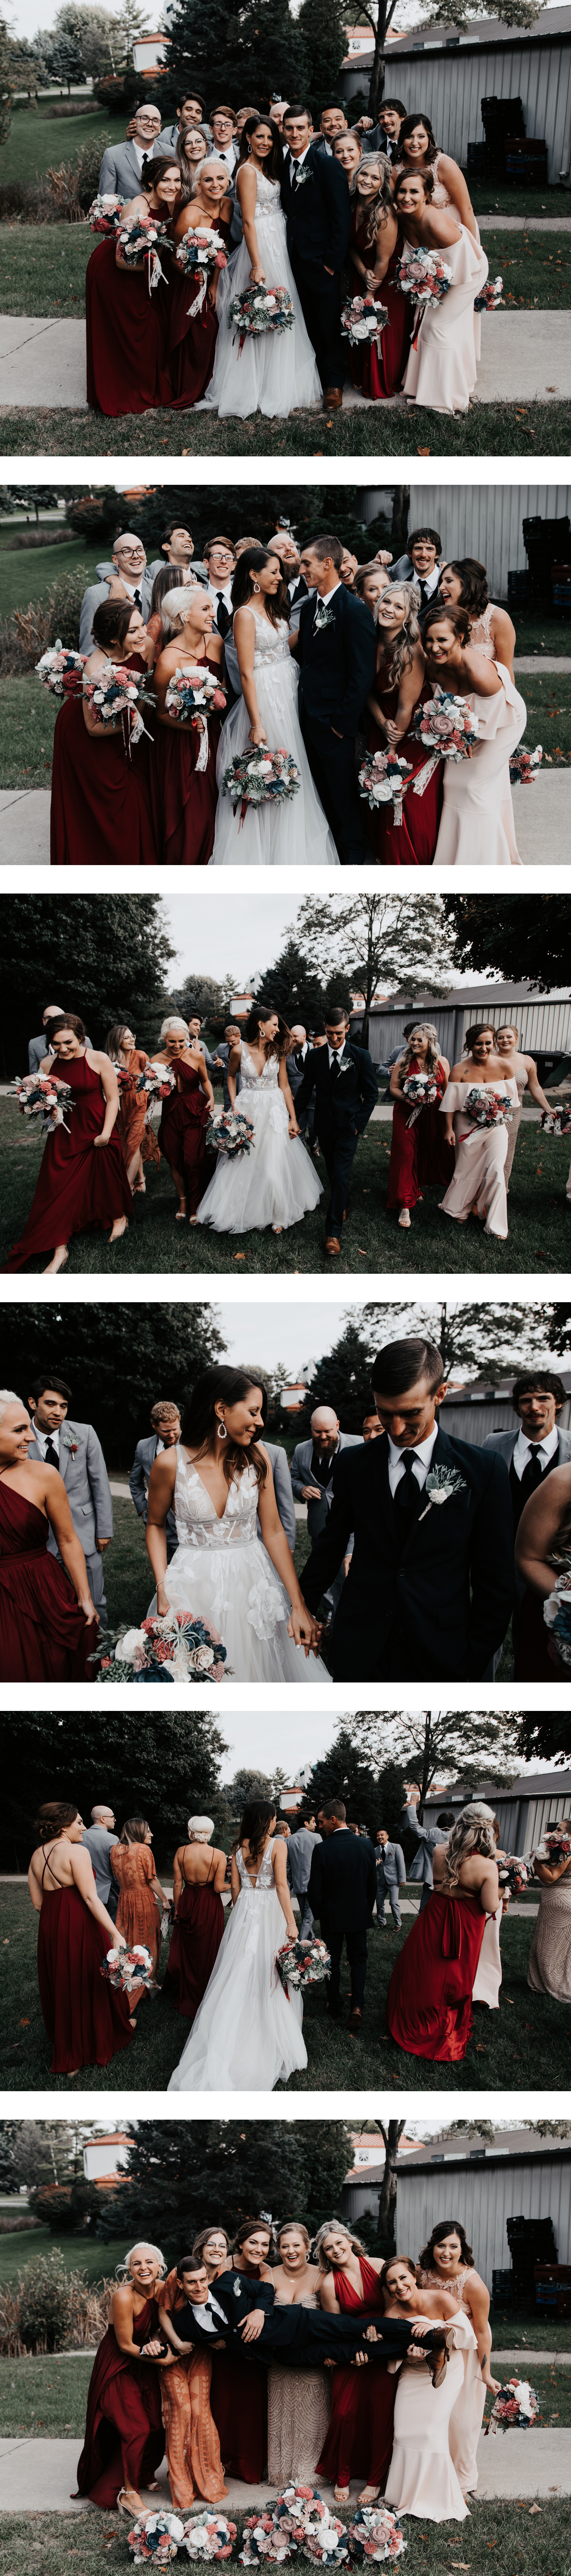 The Pollack Wedding 13.jpg